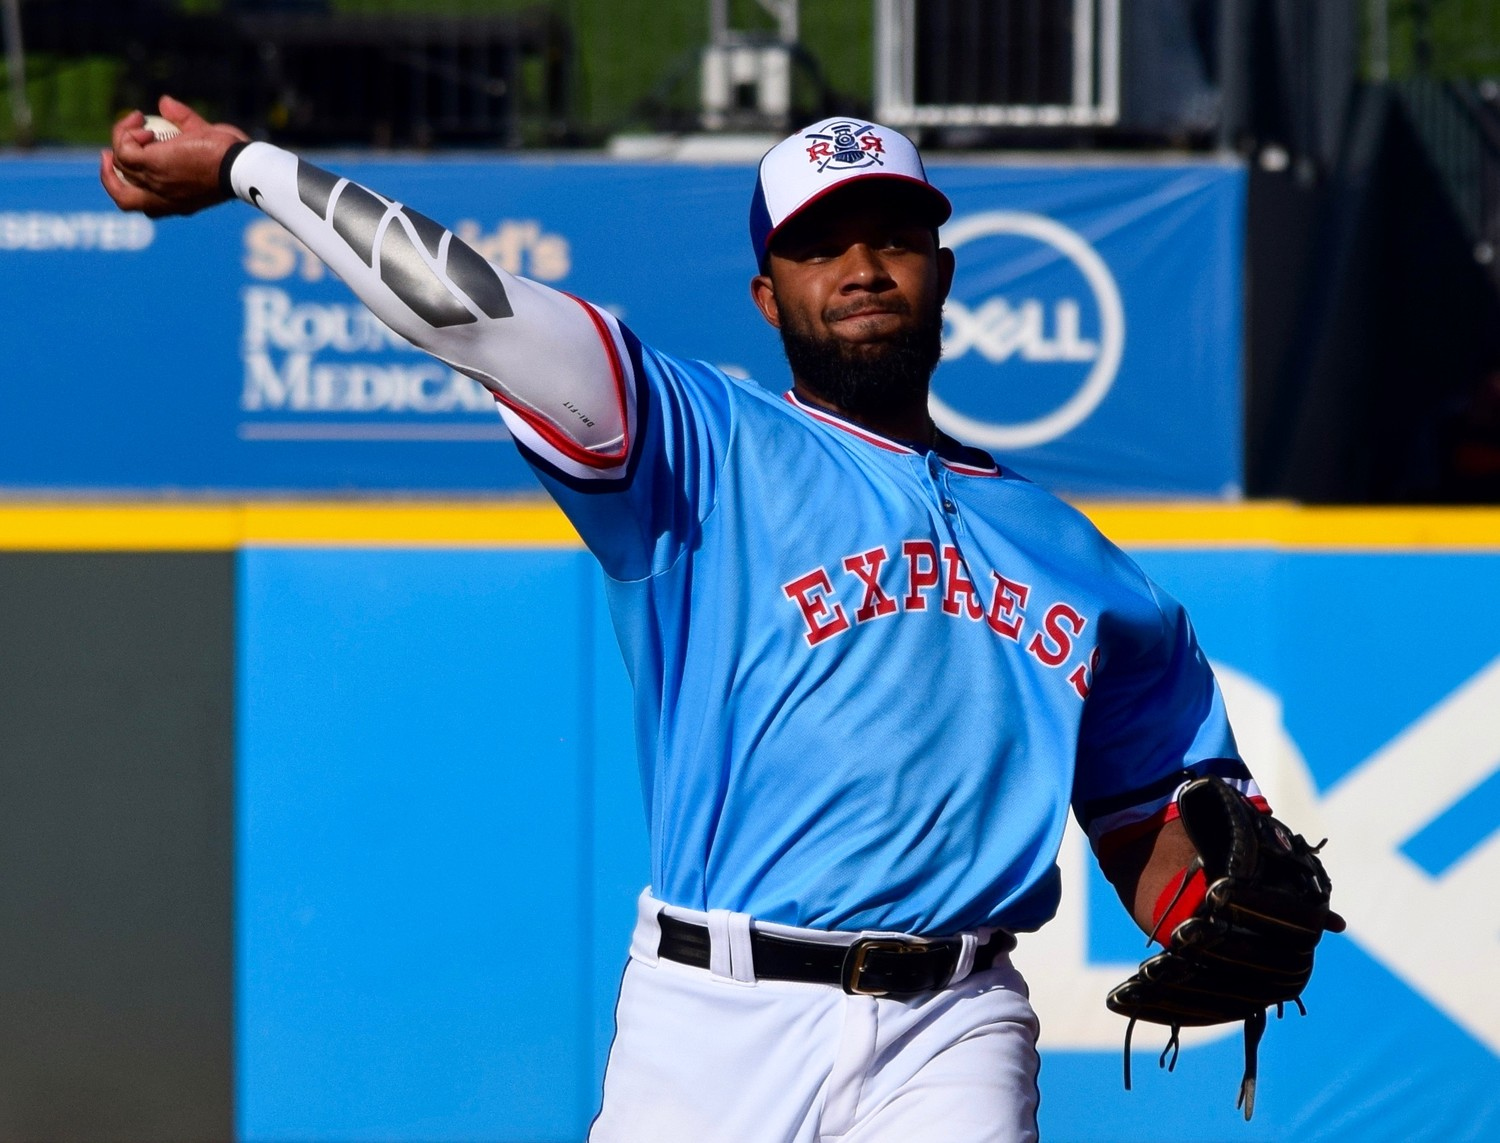 Elvis Andrus is embracing his role as a mentor, even if it is for just a couple days. He missed nearly two months with a broken bone in his elbow, the first extended time he's been away from the Rangers in his big league career.